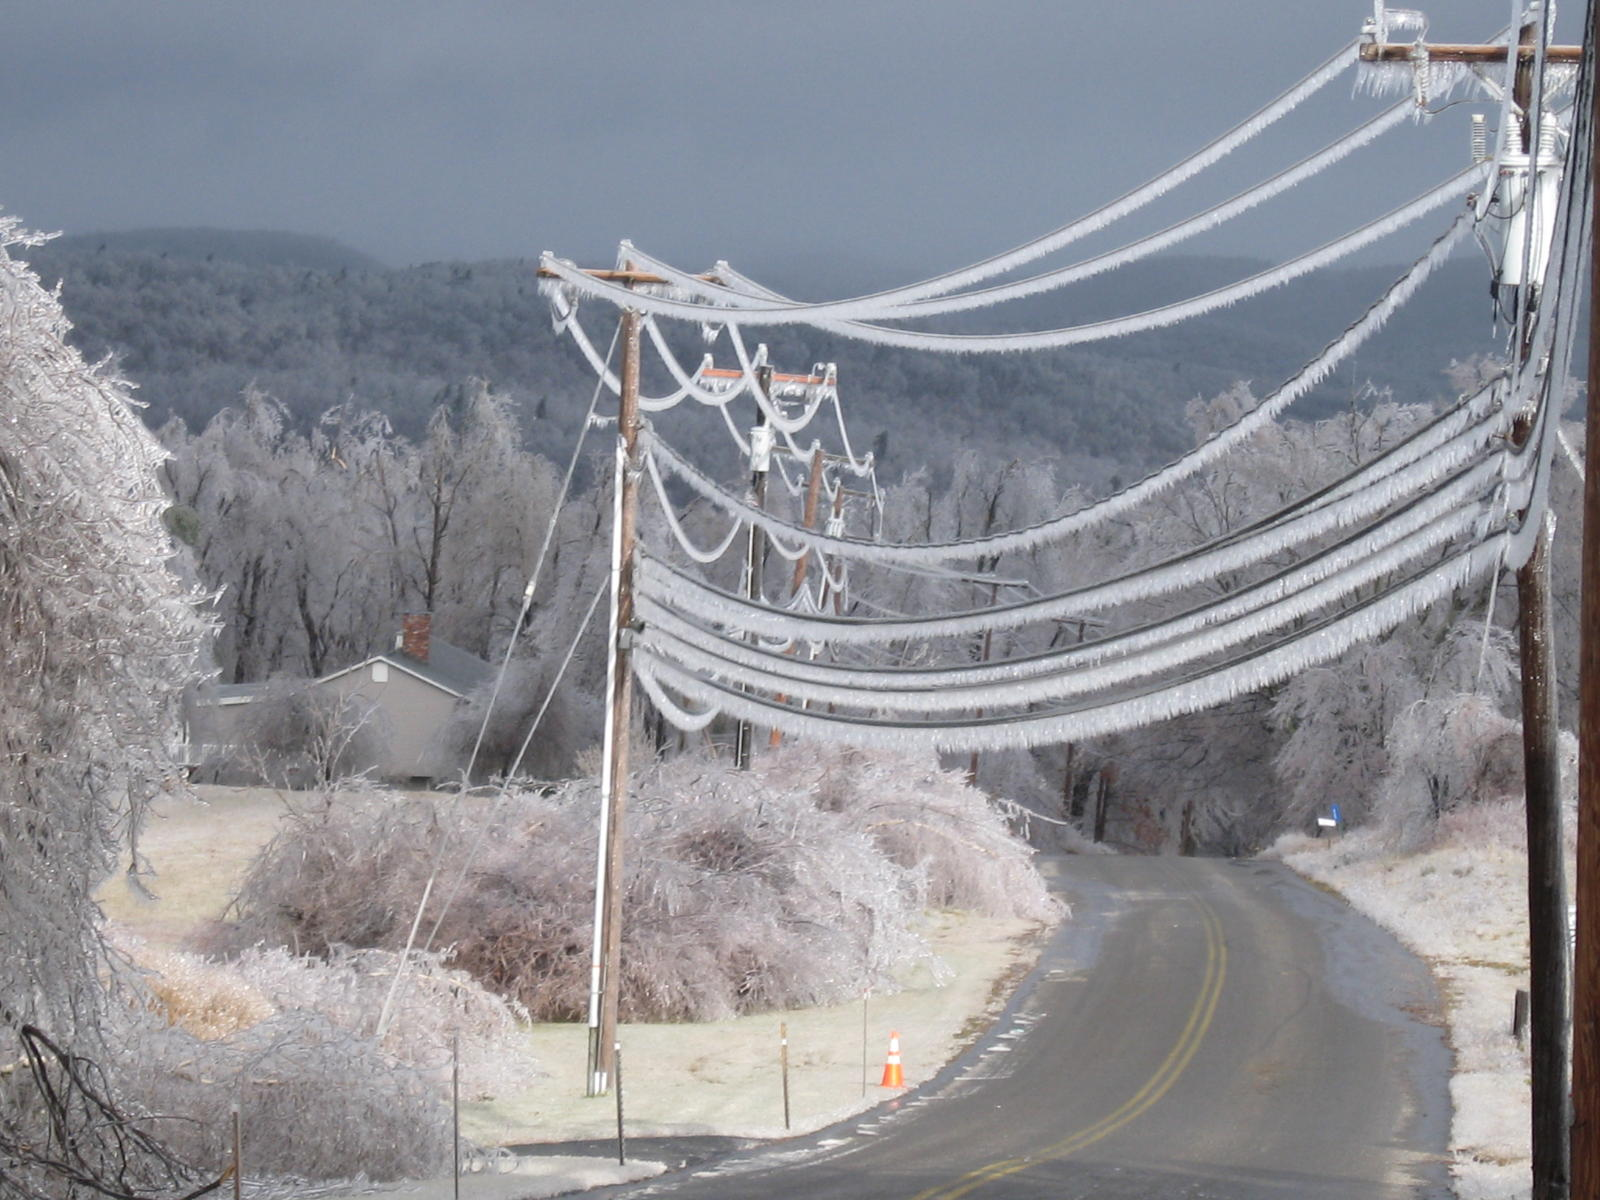 Freezing Rain and Its Effects on Power Lines